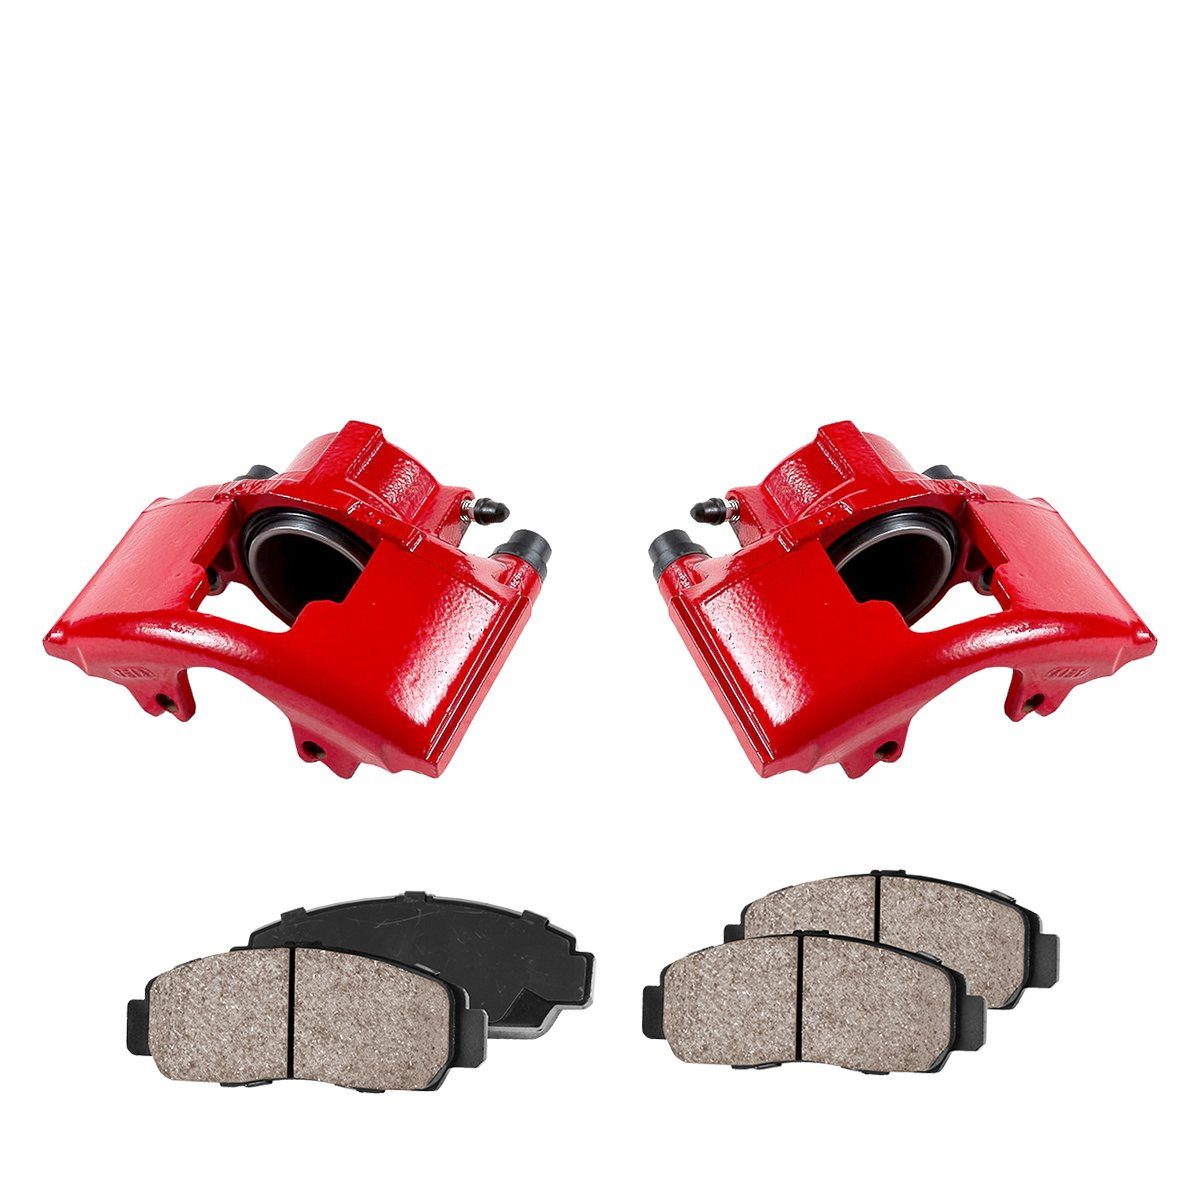 CK00637 [2] FRONT Performance Loaded Powder Coated Red Caliper Assembly + Quiet Low Dust Ceramic Brake Pads Callahan Brake Parts